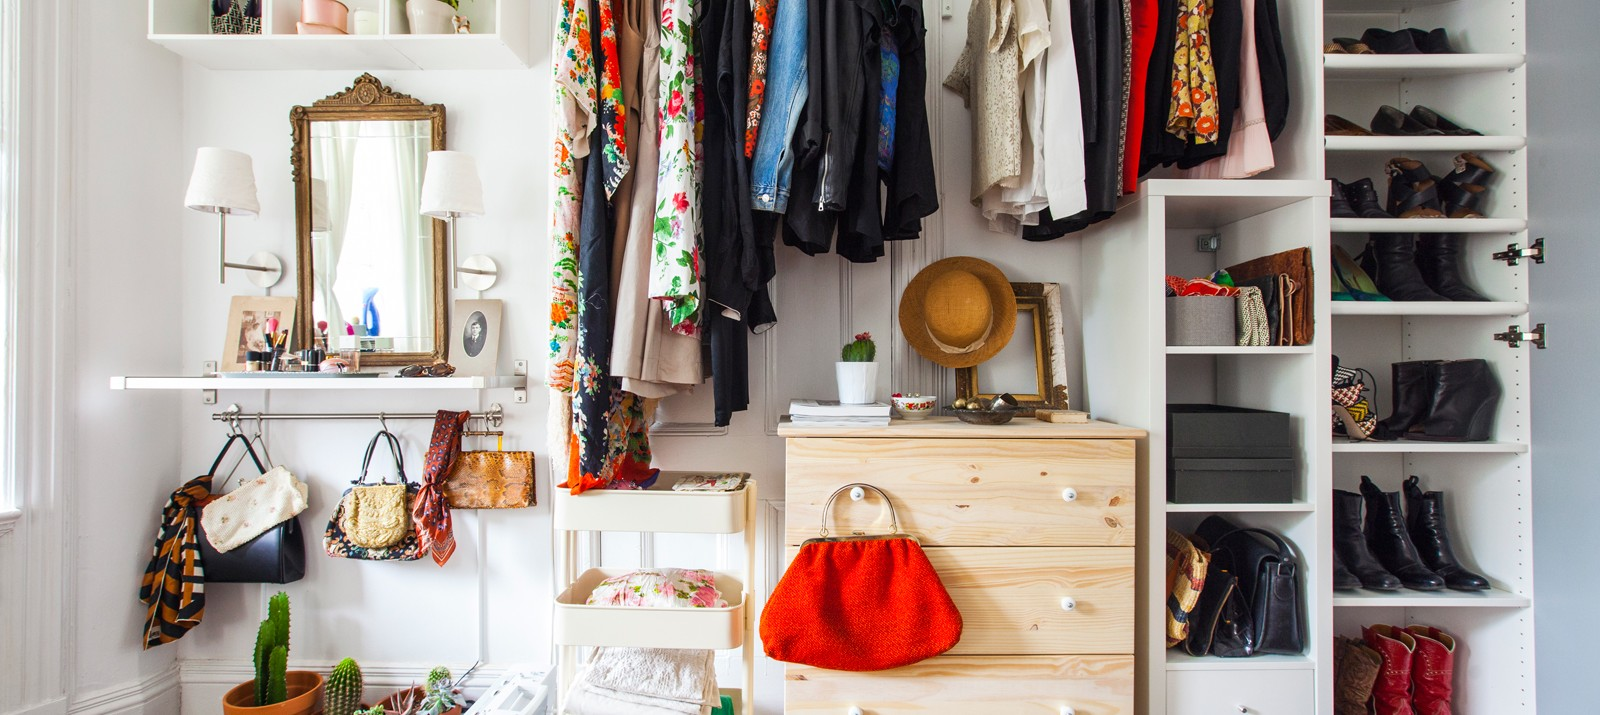 A Diy Closet Made With Ikea Hacks